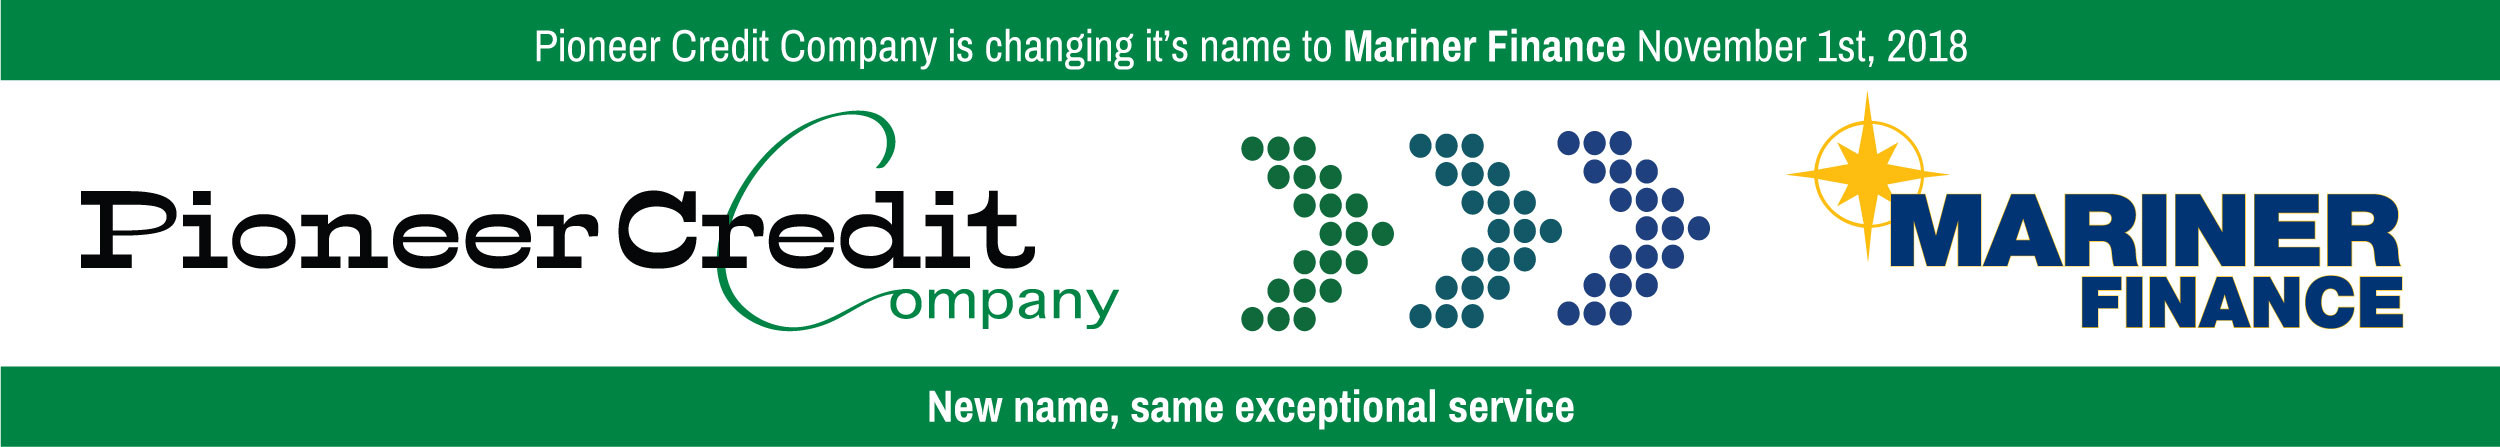 Pioneer is changing it's name to Mariner Finance. November 1st, 2018